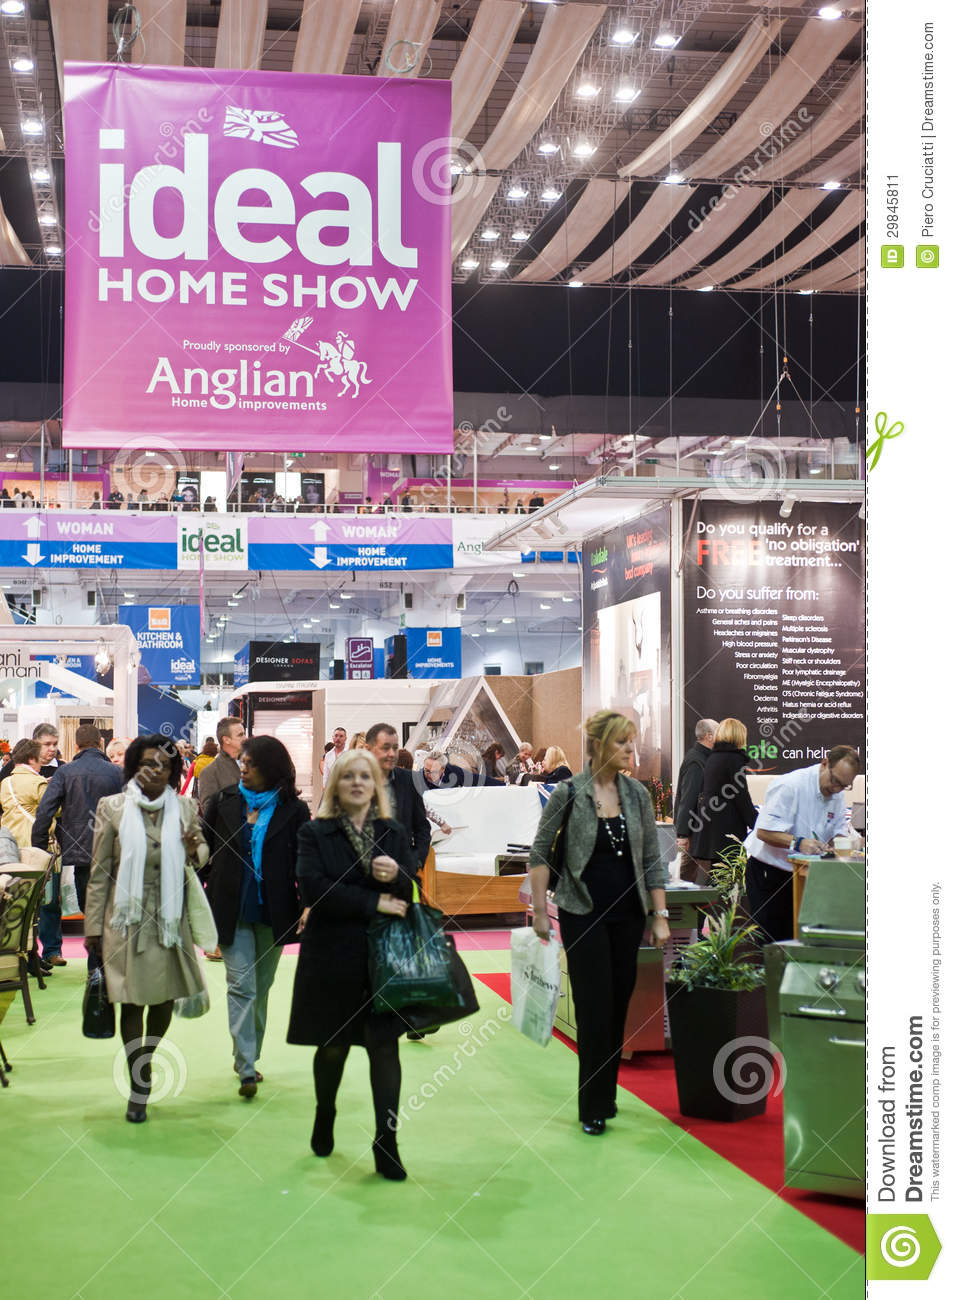 ask information solar panels ideal home show exhibition